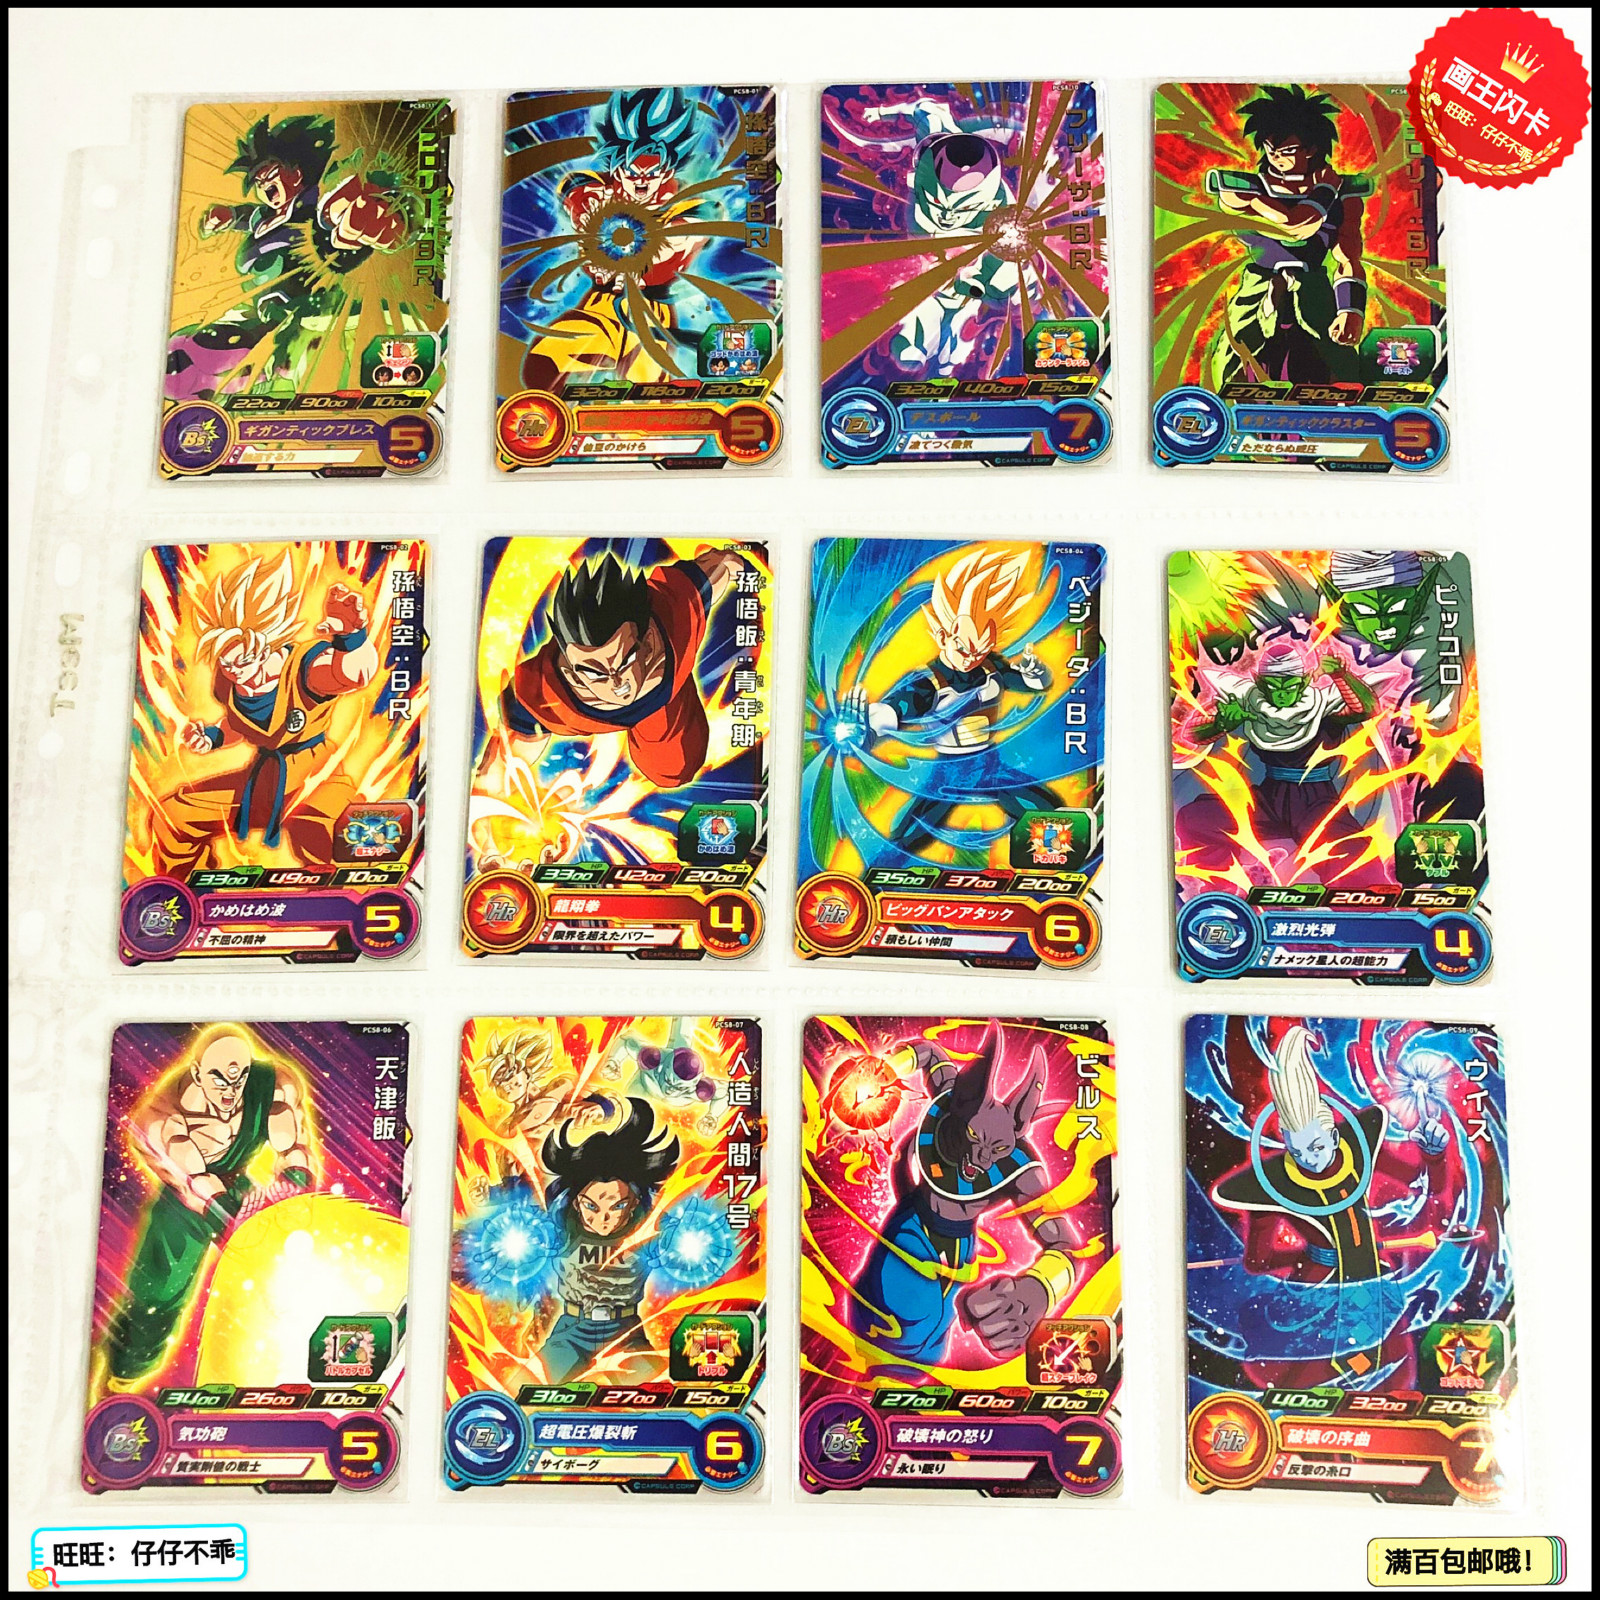 Japan Original Dragon Ball Hero Card PCS8 Goku Toys Hobbies Collectibles Game Collection Anime Cards